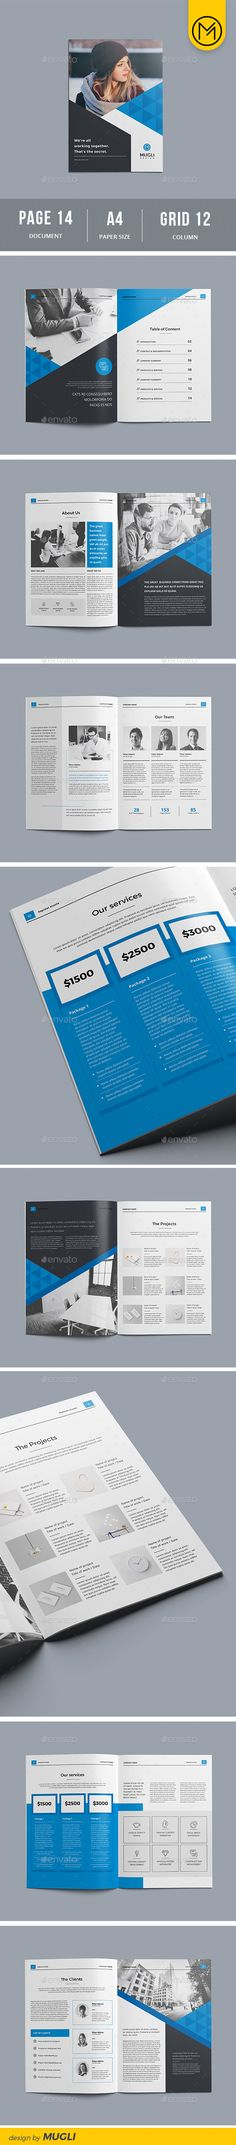 Brochure — InDesign INDD #indesign #project • Download ➝ https://graphicriver.net/item/brochure/19404265?ref=pxcr